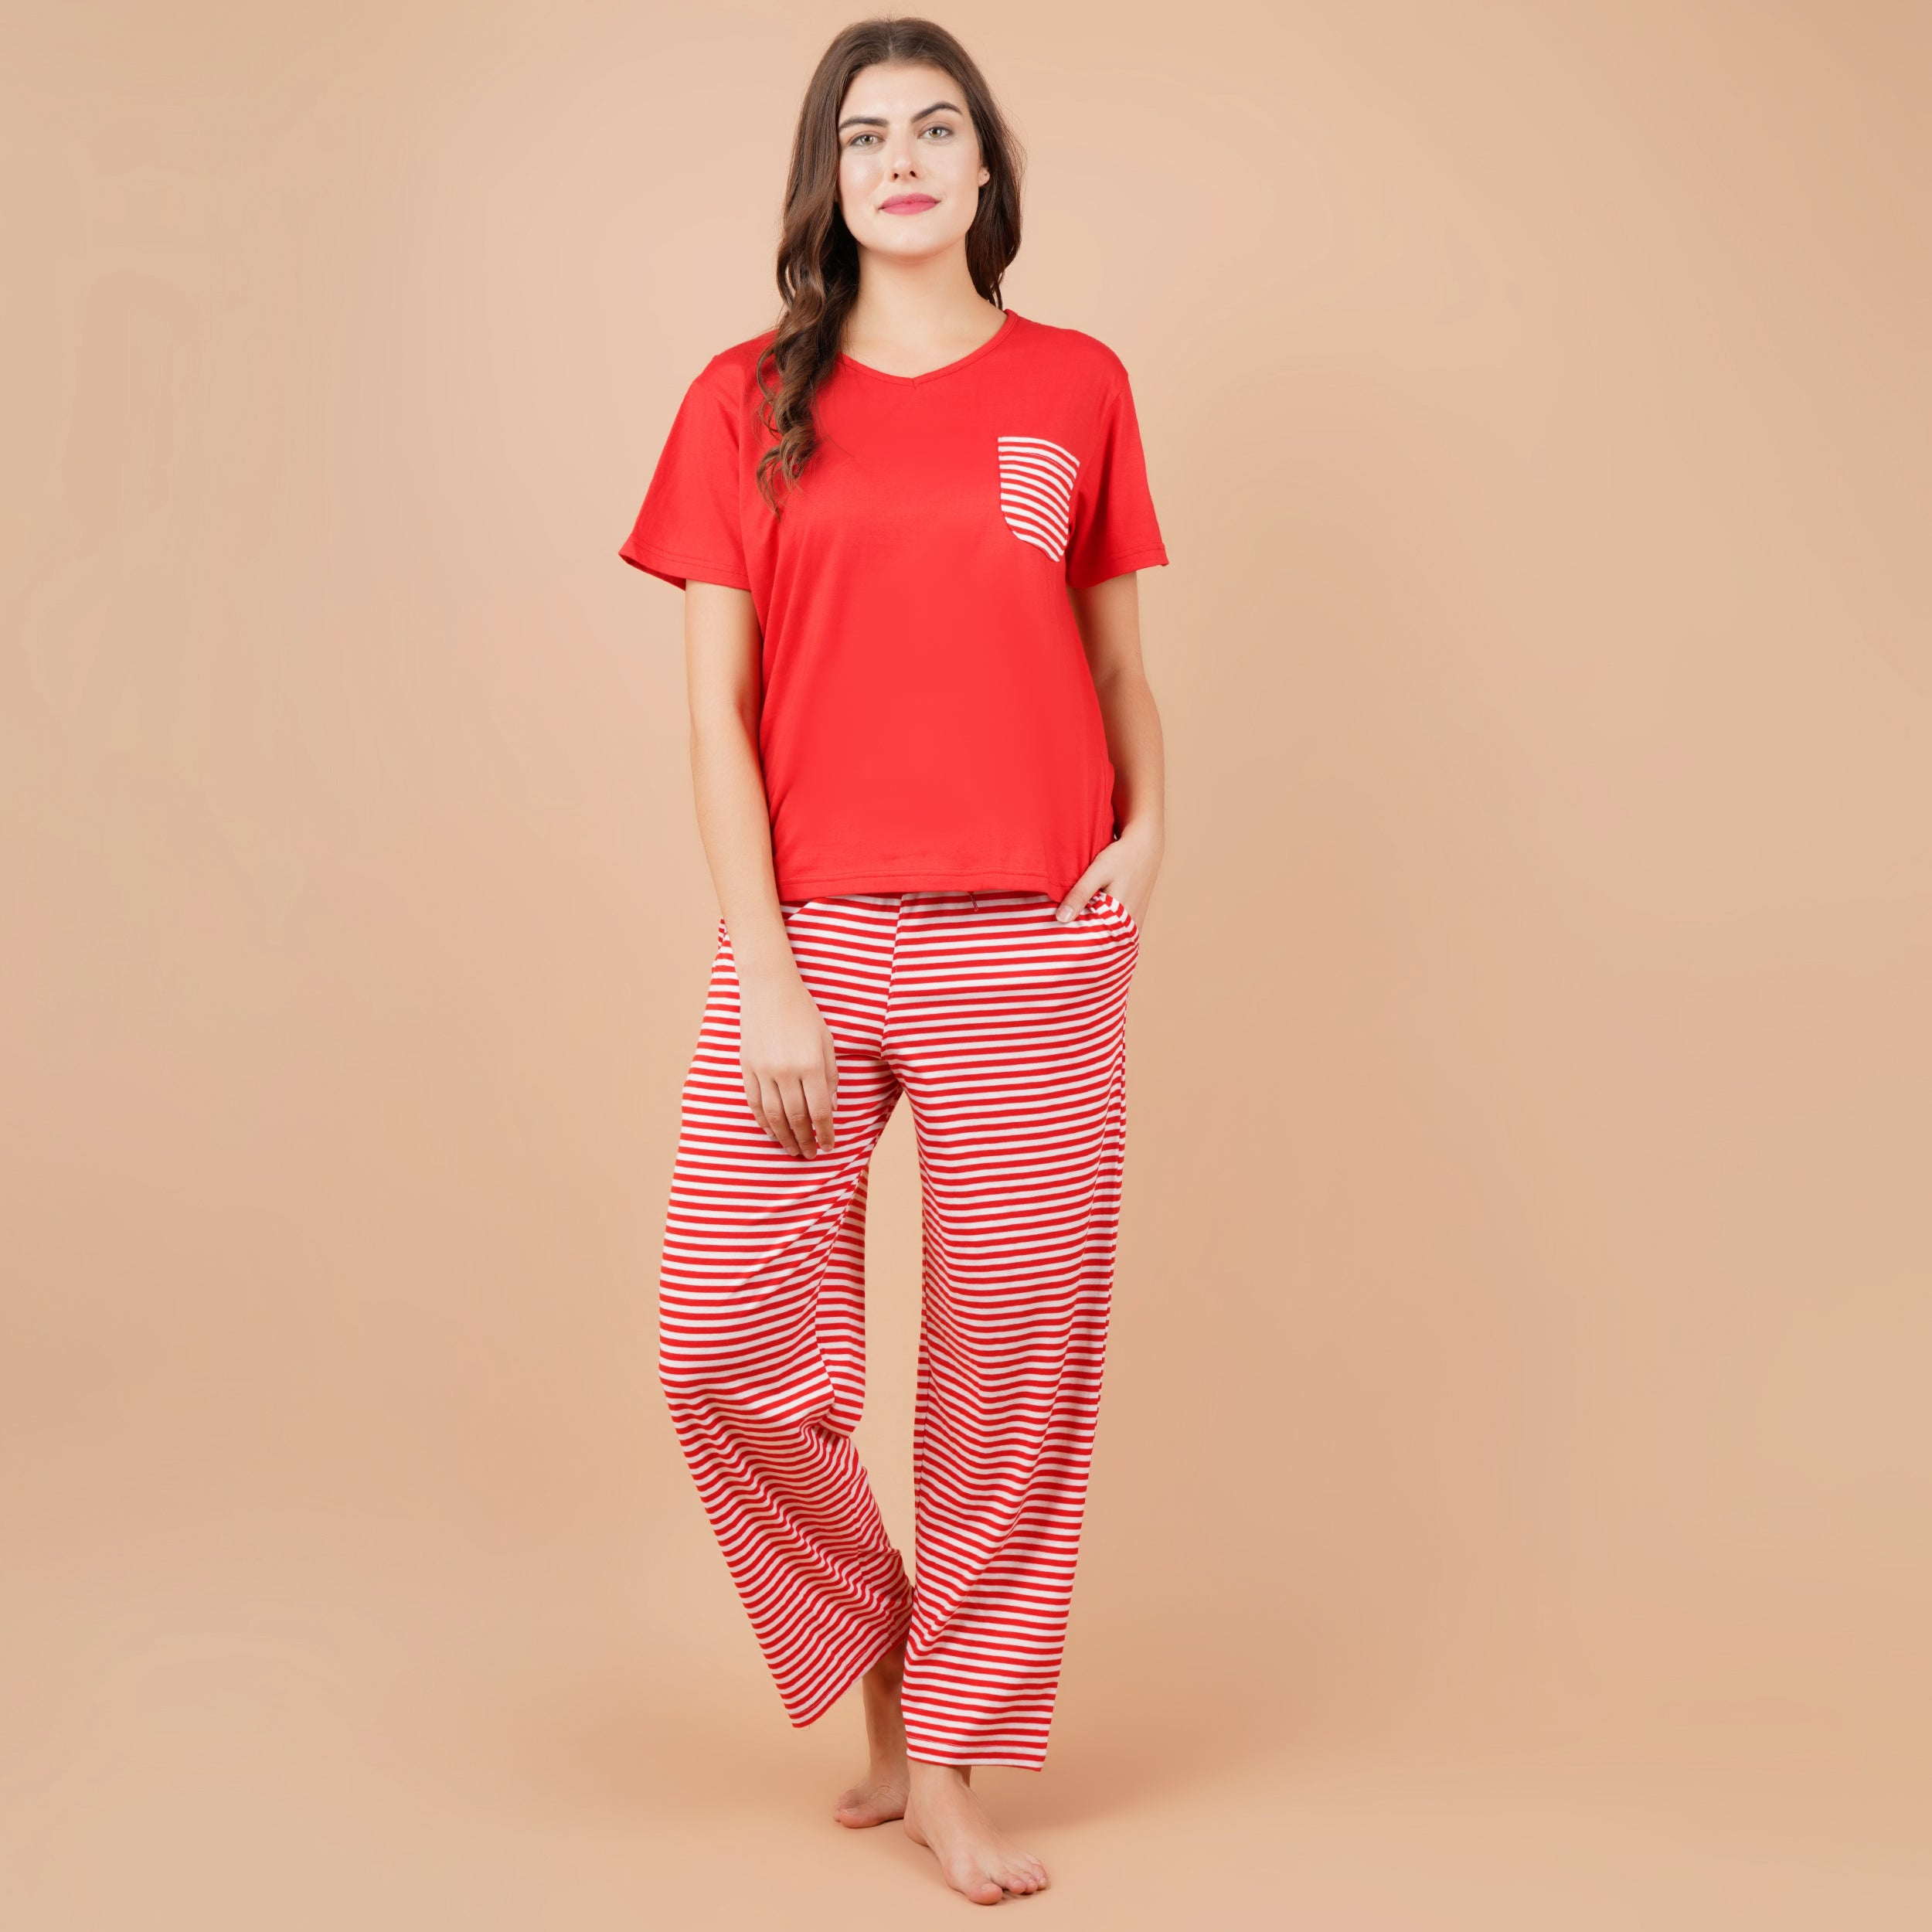 Ficuster Women Red Pink Short Sleeve Pyjama Set